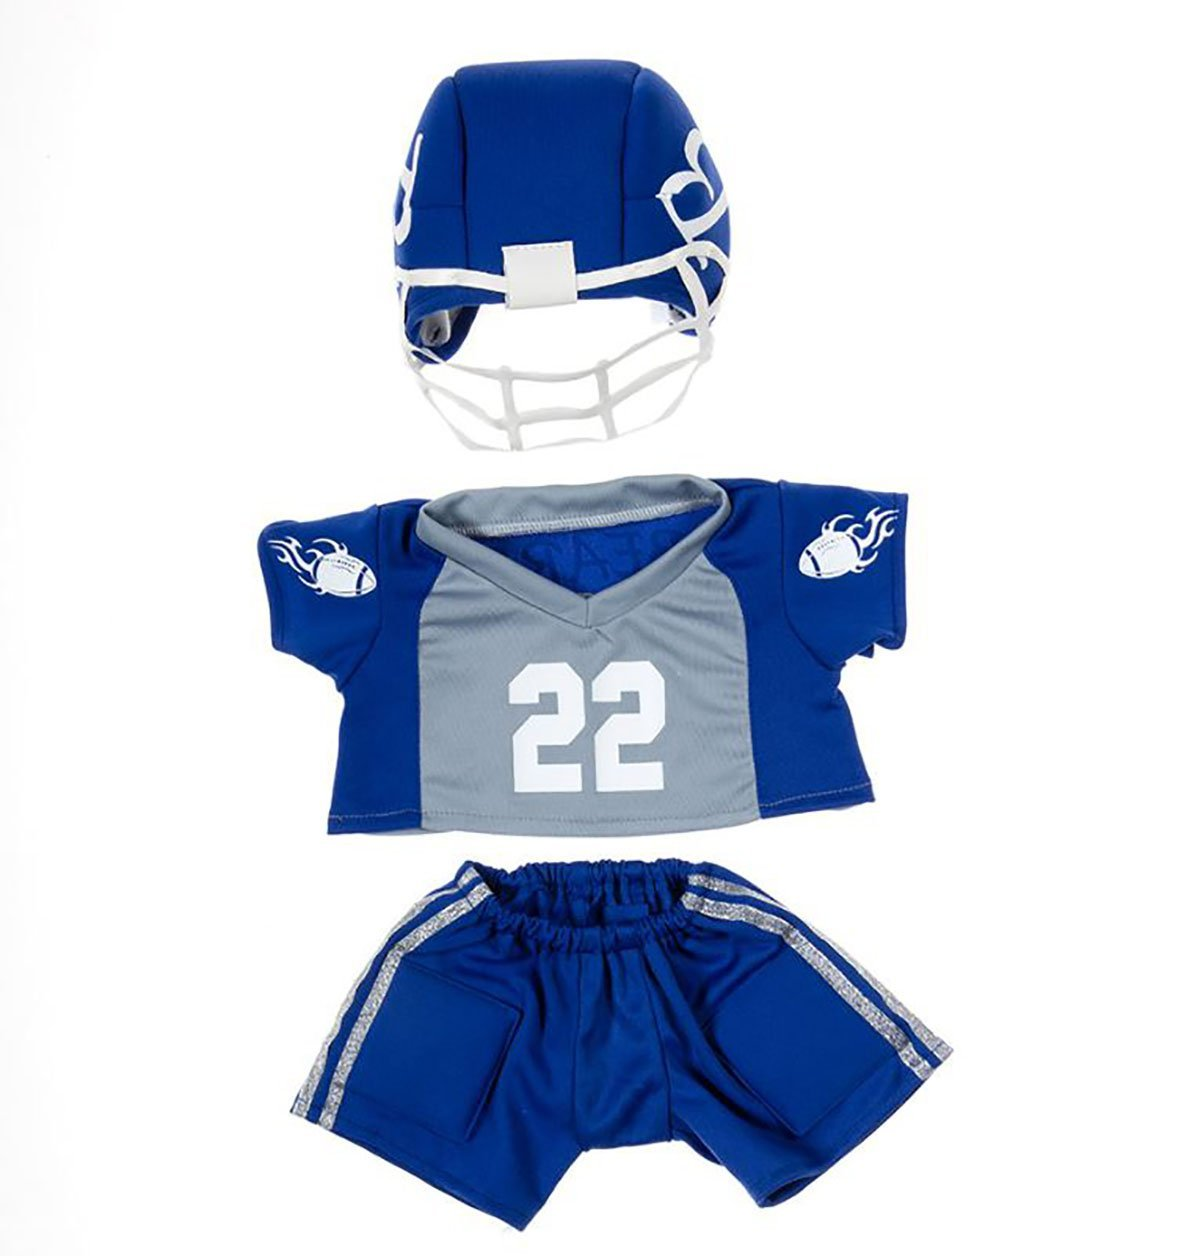 "Football Uniform Outfit Teddy Bear Clothes Fits Most 14"" 18"" Build-a-bear,... by Bear Factory"